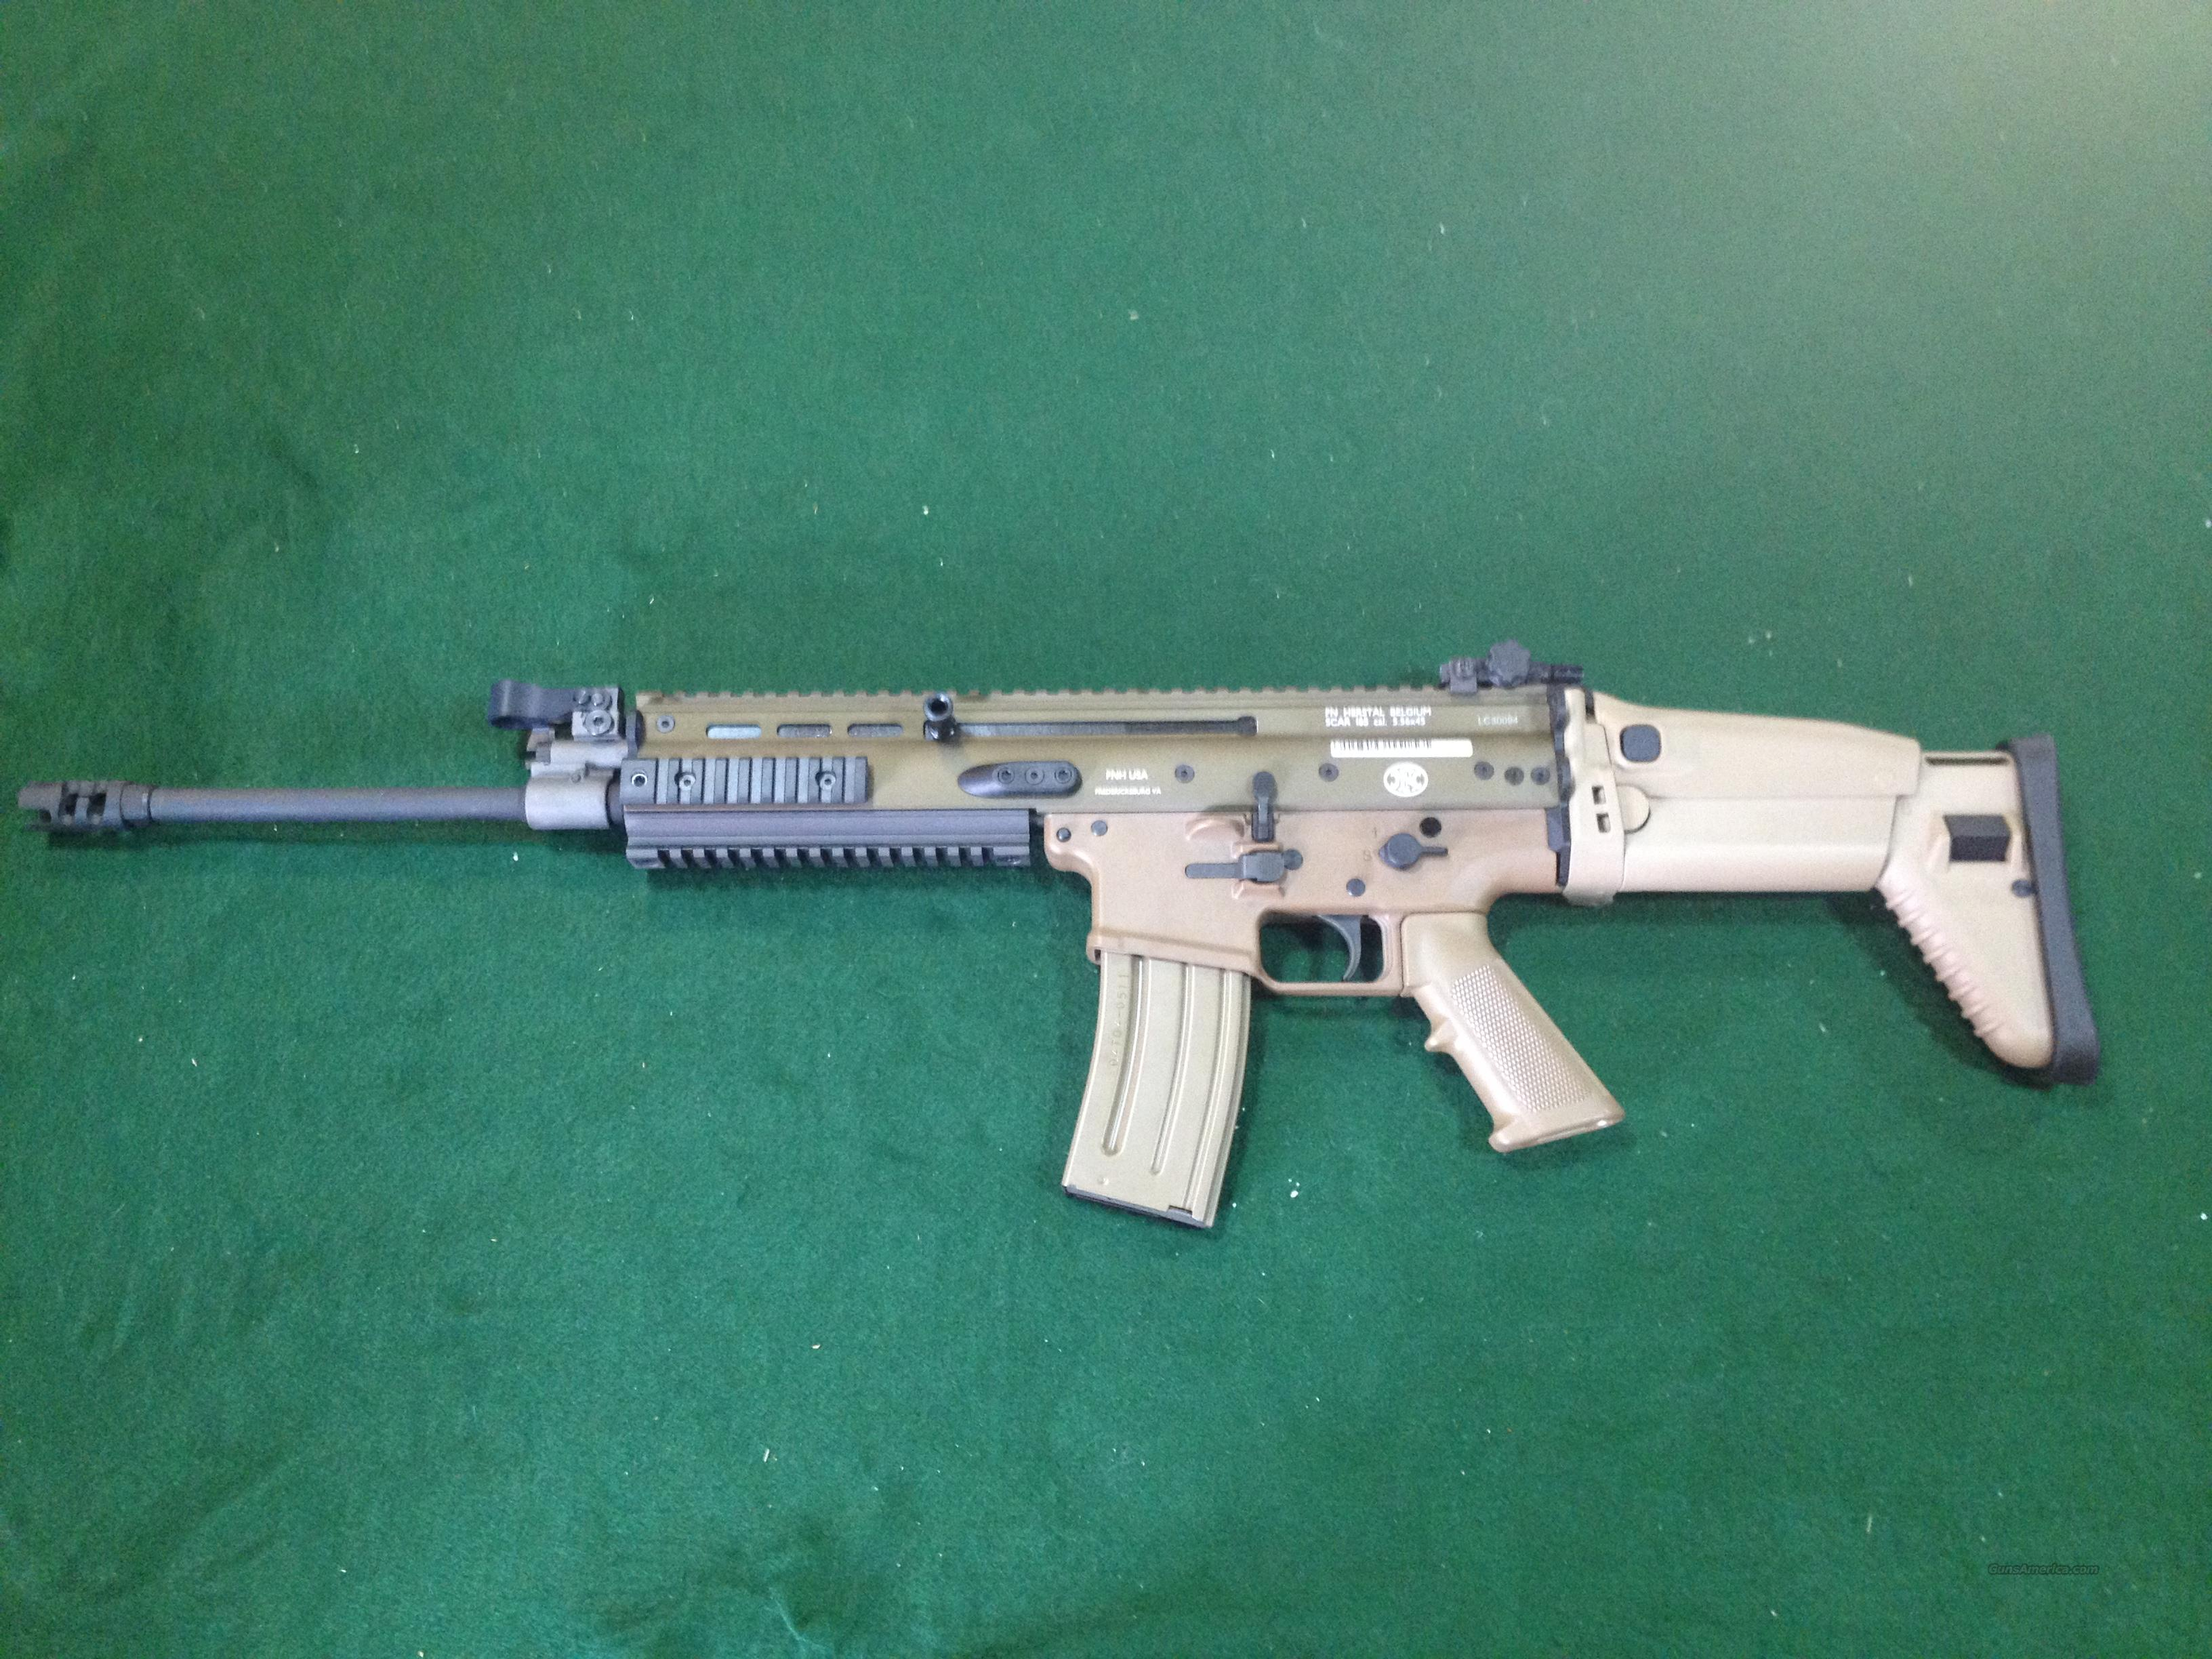 FNH SCAR 16S 5.56 Flat Dark Earth  Guns > Rifles > FNH - Fabrique Nationale (FN) Rifles > Semi-auto > Other